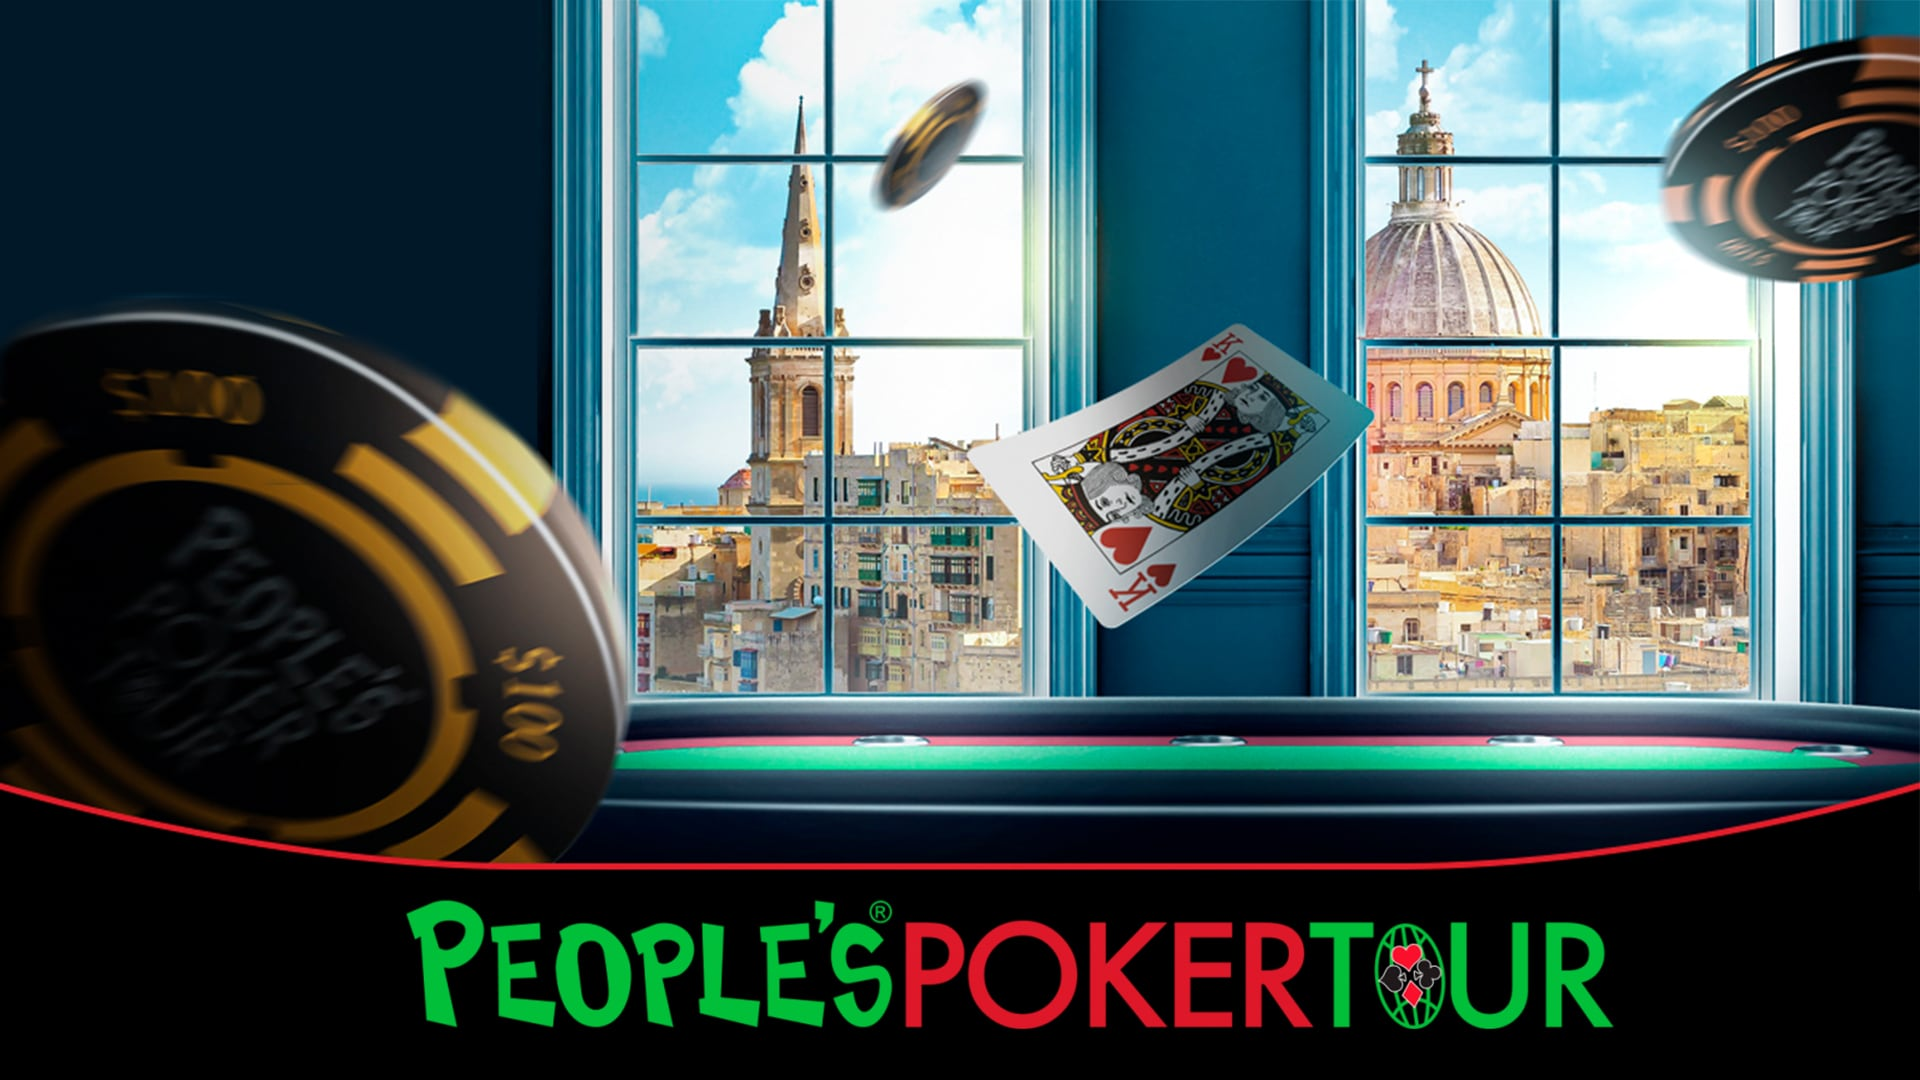 PEOPLE POKER TOUR